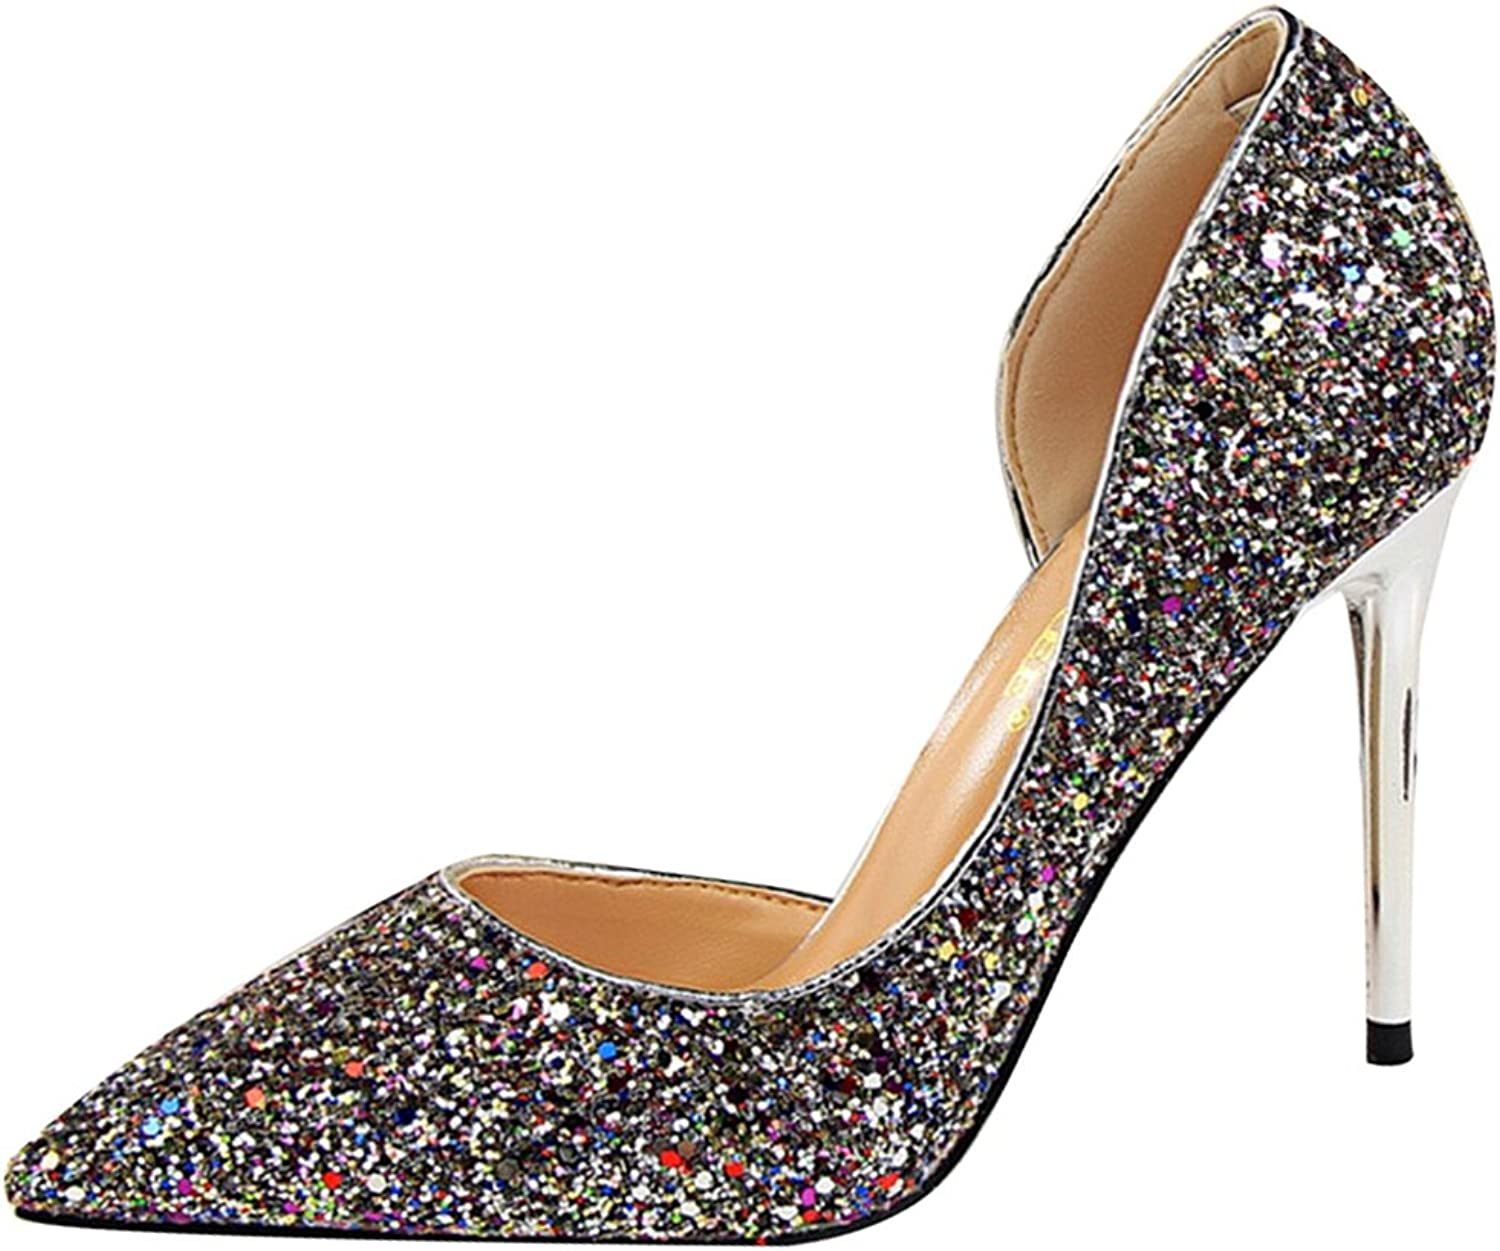 Owen Moll Women Pumps, Sequined Cloth Shallow Side Cut-Outs Pointed Toe Sandal shoes